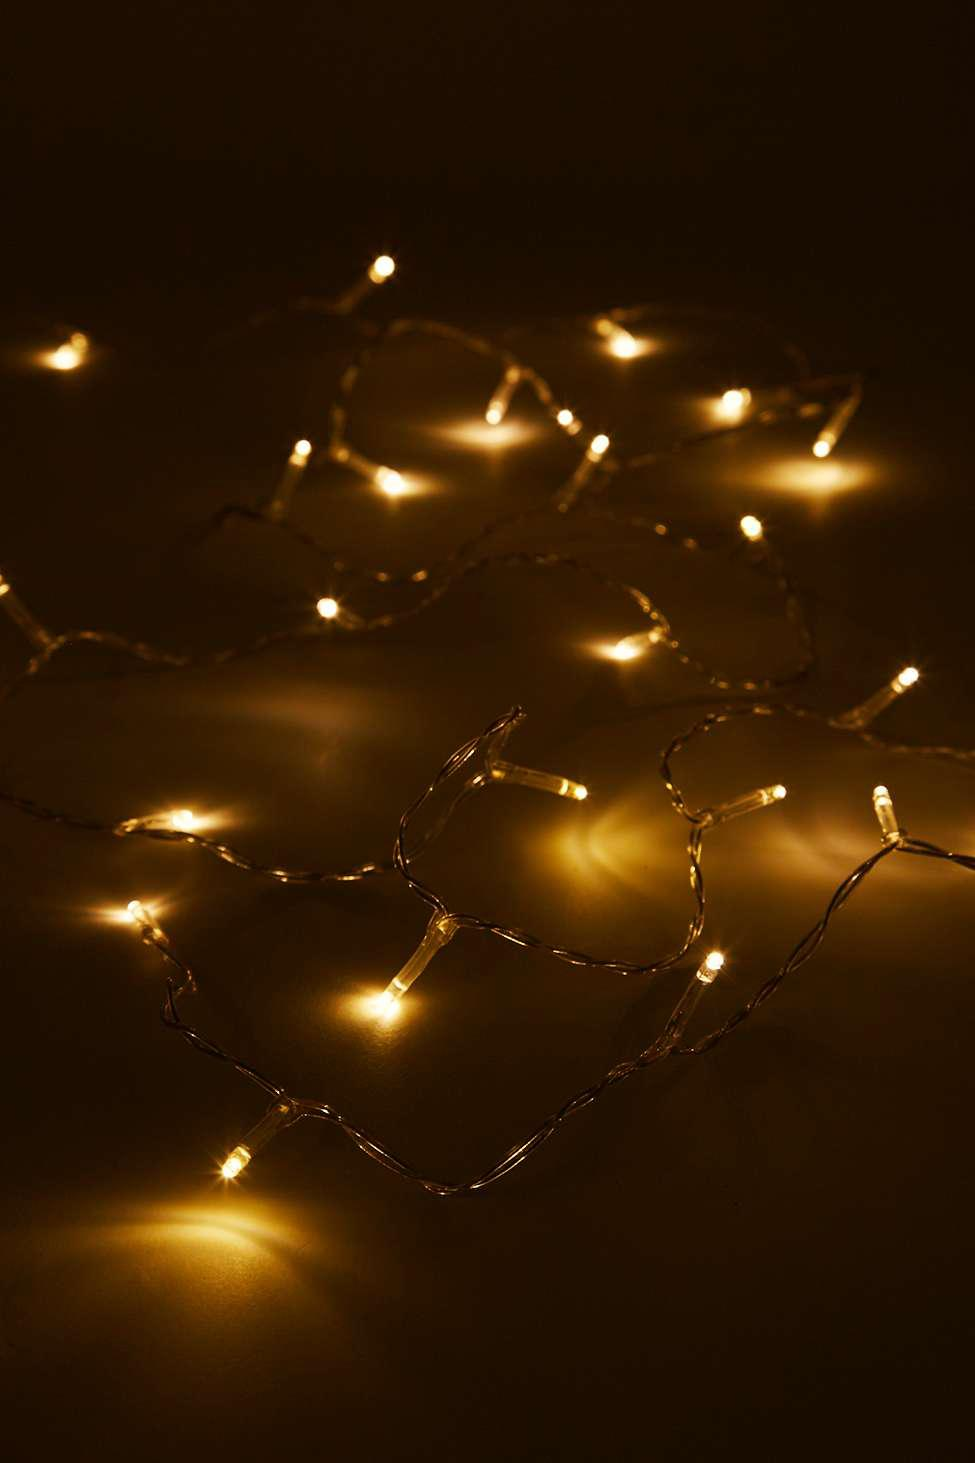 Pin fairy lights urban outfitters from urban outfitters for Fairy lights urban outfitters us